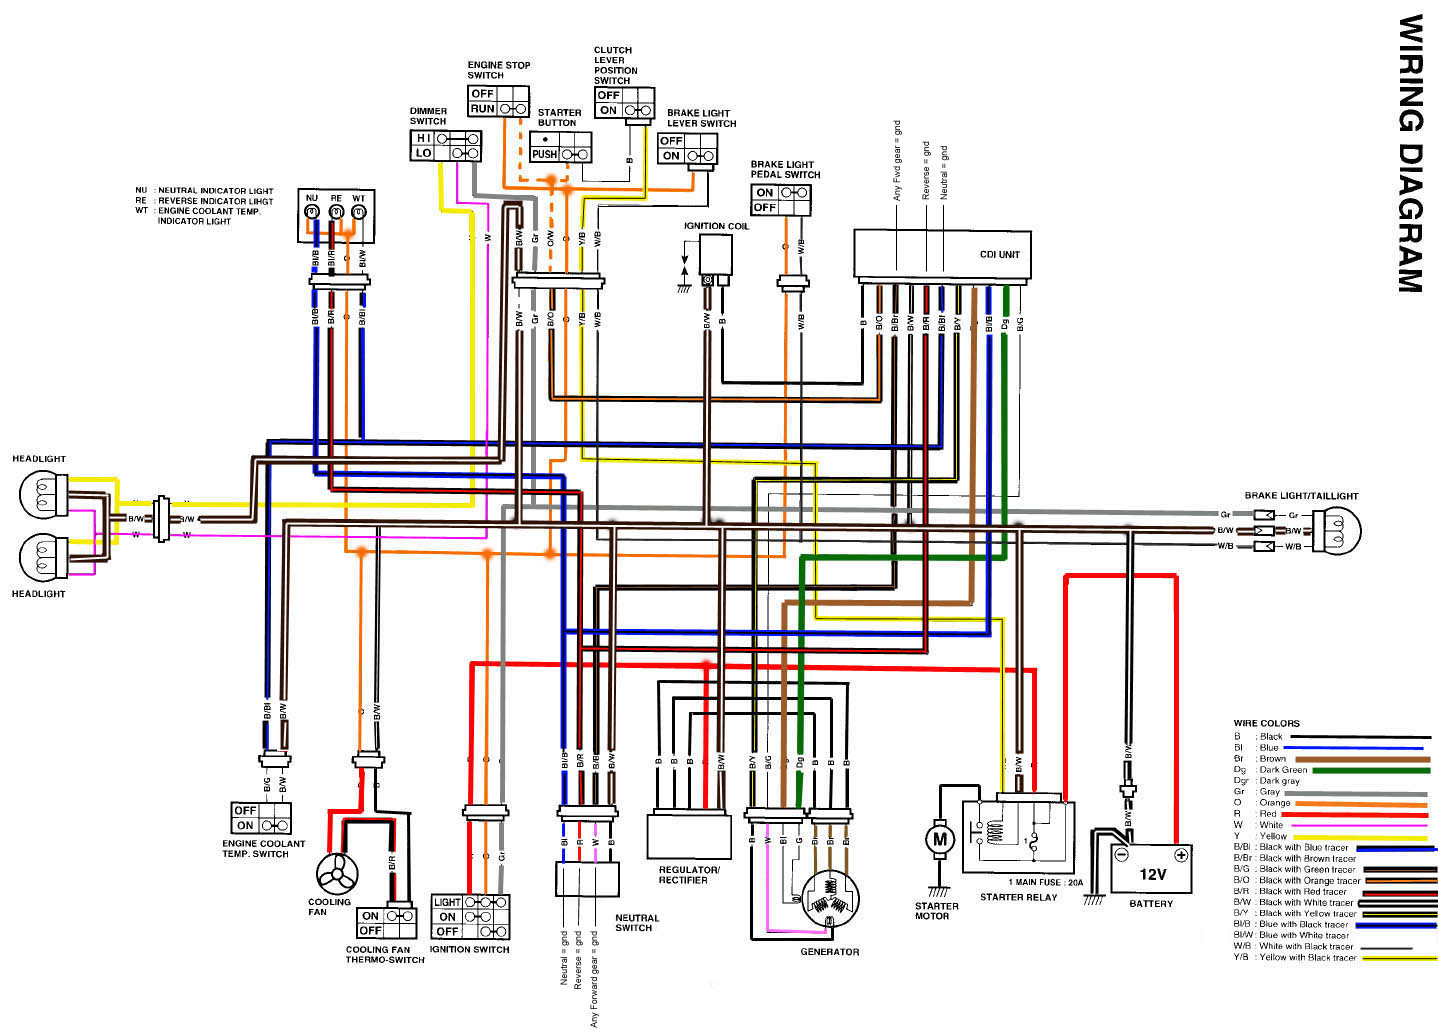 Ltr 450 Wiring Diagram - Wiring Diagram Meta Klx R Wiring Diagram on switch diagrams, friendship bracelet diagrams, engine diagrams, internet of things diagrams, led circuit diagrams, motor diagrams, smart car diagrams, sincgars radio configurations diagrams, electronic circuit diagrams, lighting diagrams, gmc fuse box diagrams, series and parallel circuits diagrams, pinout diagrams, transformer diagrams, electrical diagrams, troubleshooting diagrams, honda motorcycle repair diagrams, hvac diagrams, battery diagrams,